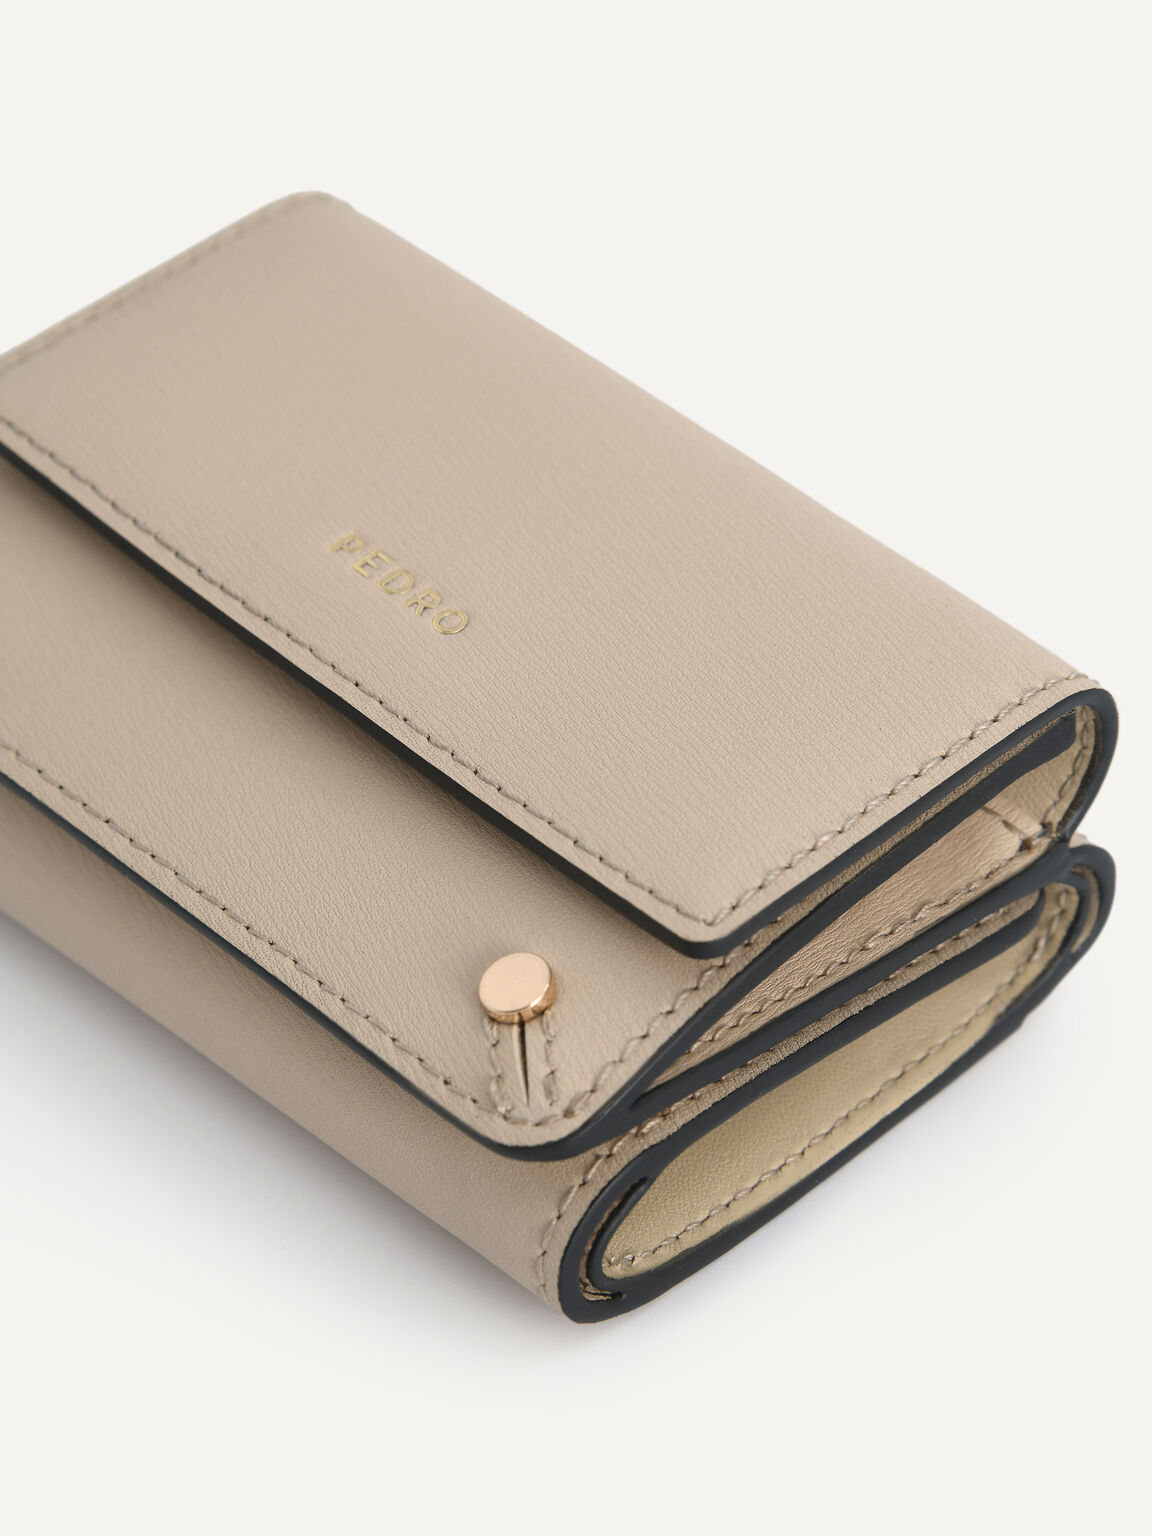 Textured Leather Trifold Wallet, Sand, hi-res